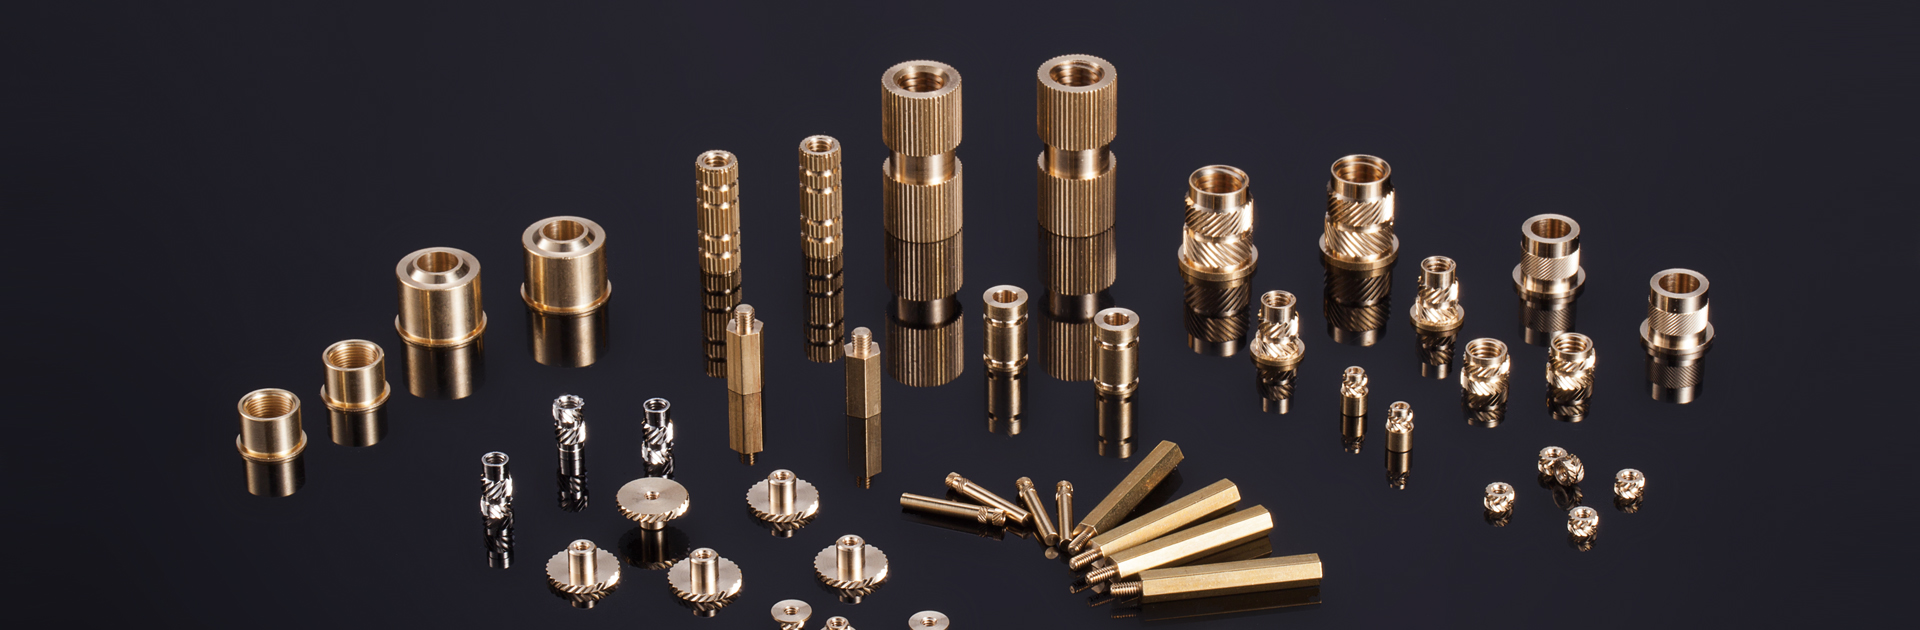 Precision nut manufacturing